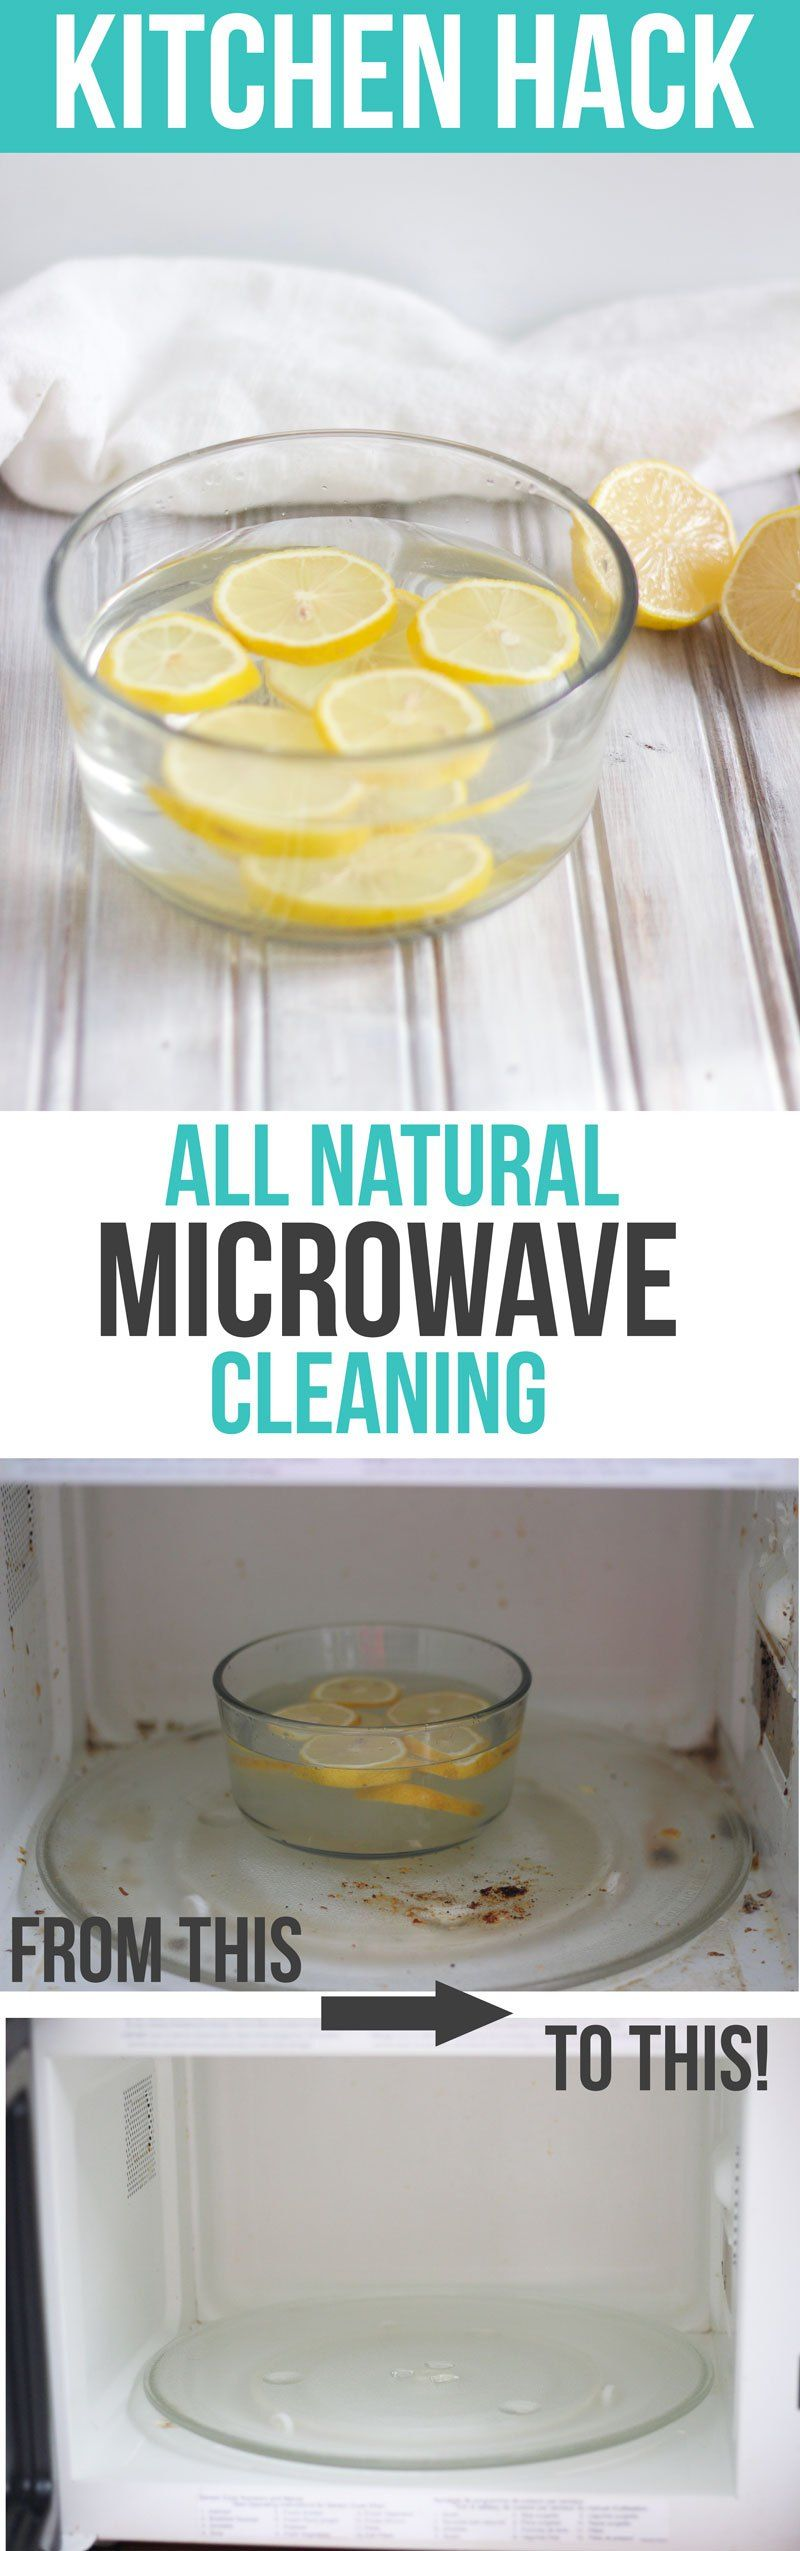 All Natural Microwave Cleaning Lemon Water Cleaner Kitchen Clean Hacks And Tips Nikkisplate